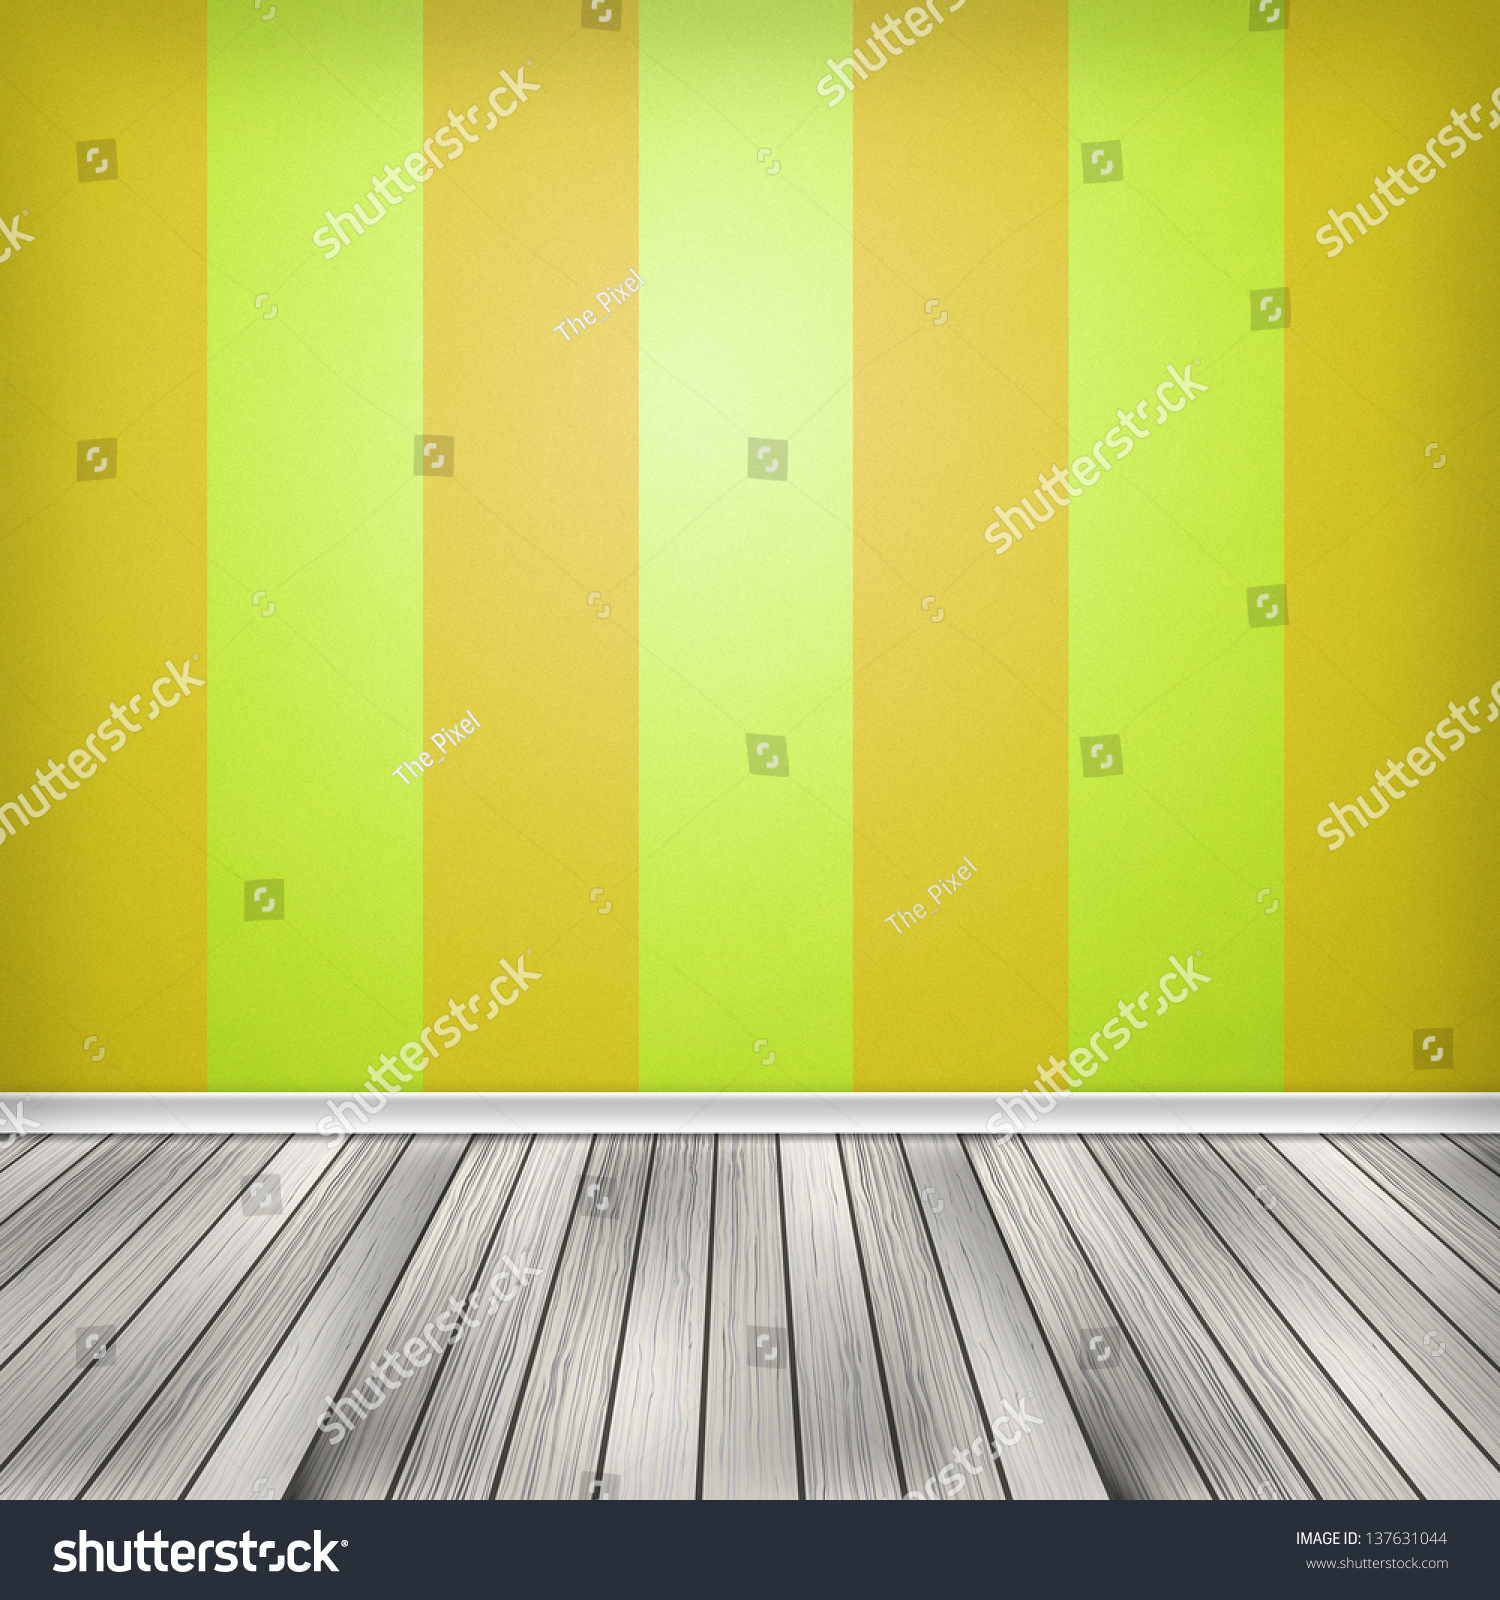 Background Colorful Room: Colorful Empty Room, Interior With Wallpaper. High